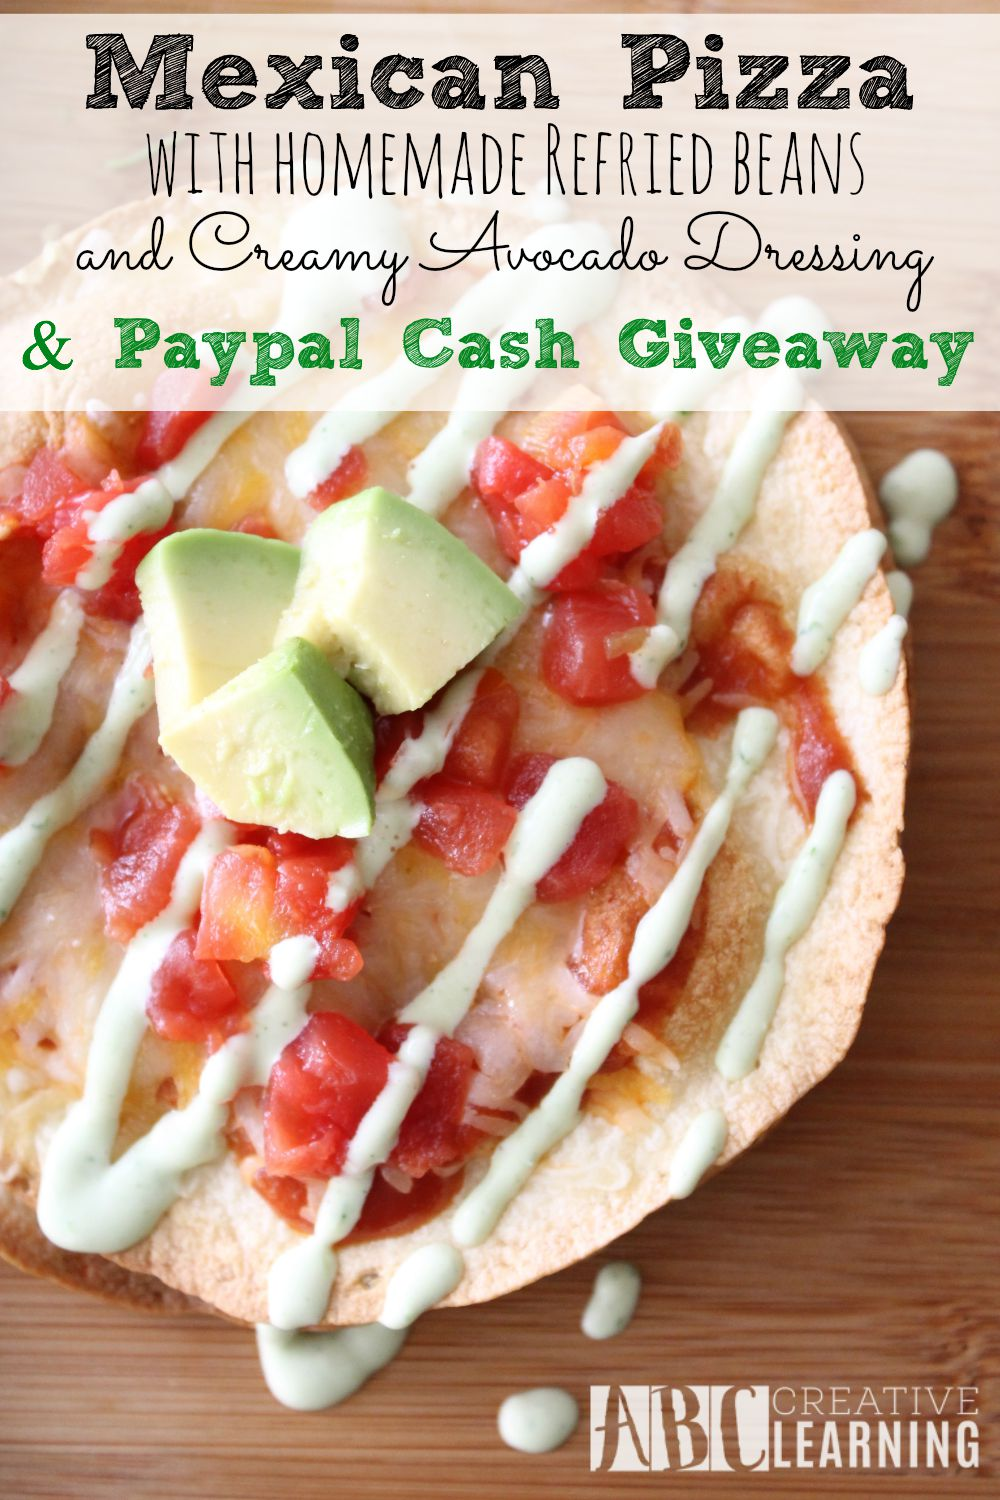 Mexican Pizza with Homemade Refried Beans and Creamy Avocado Dressing and Paypal Cash Giveaway